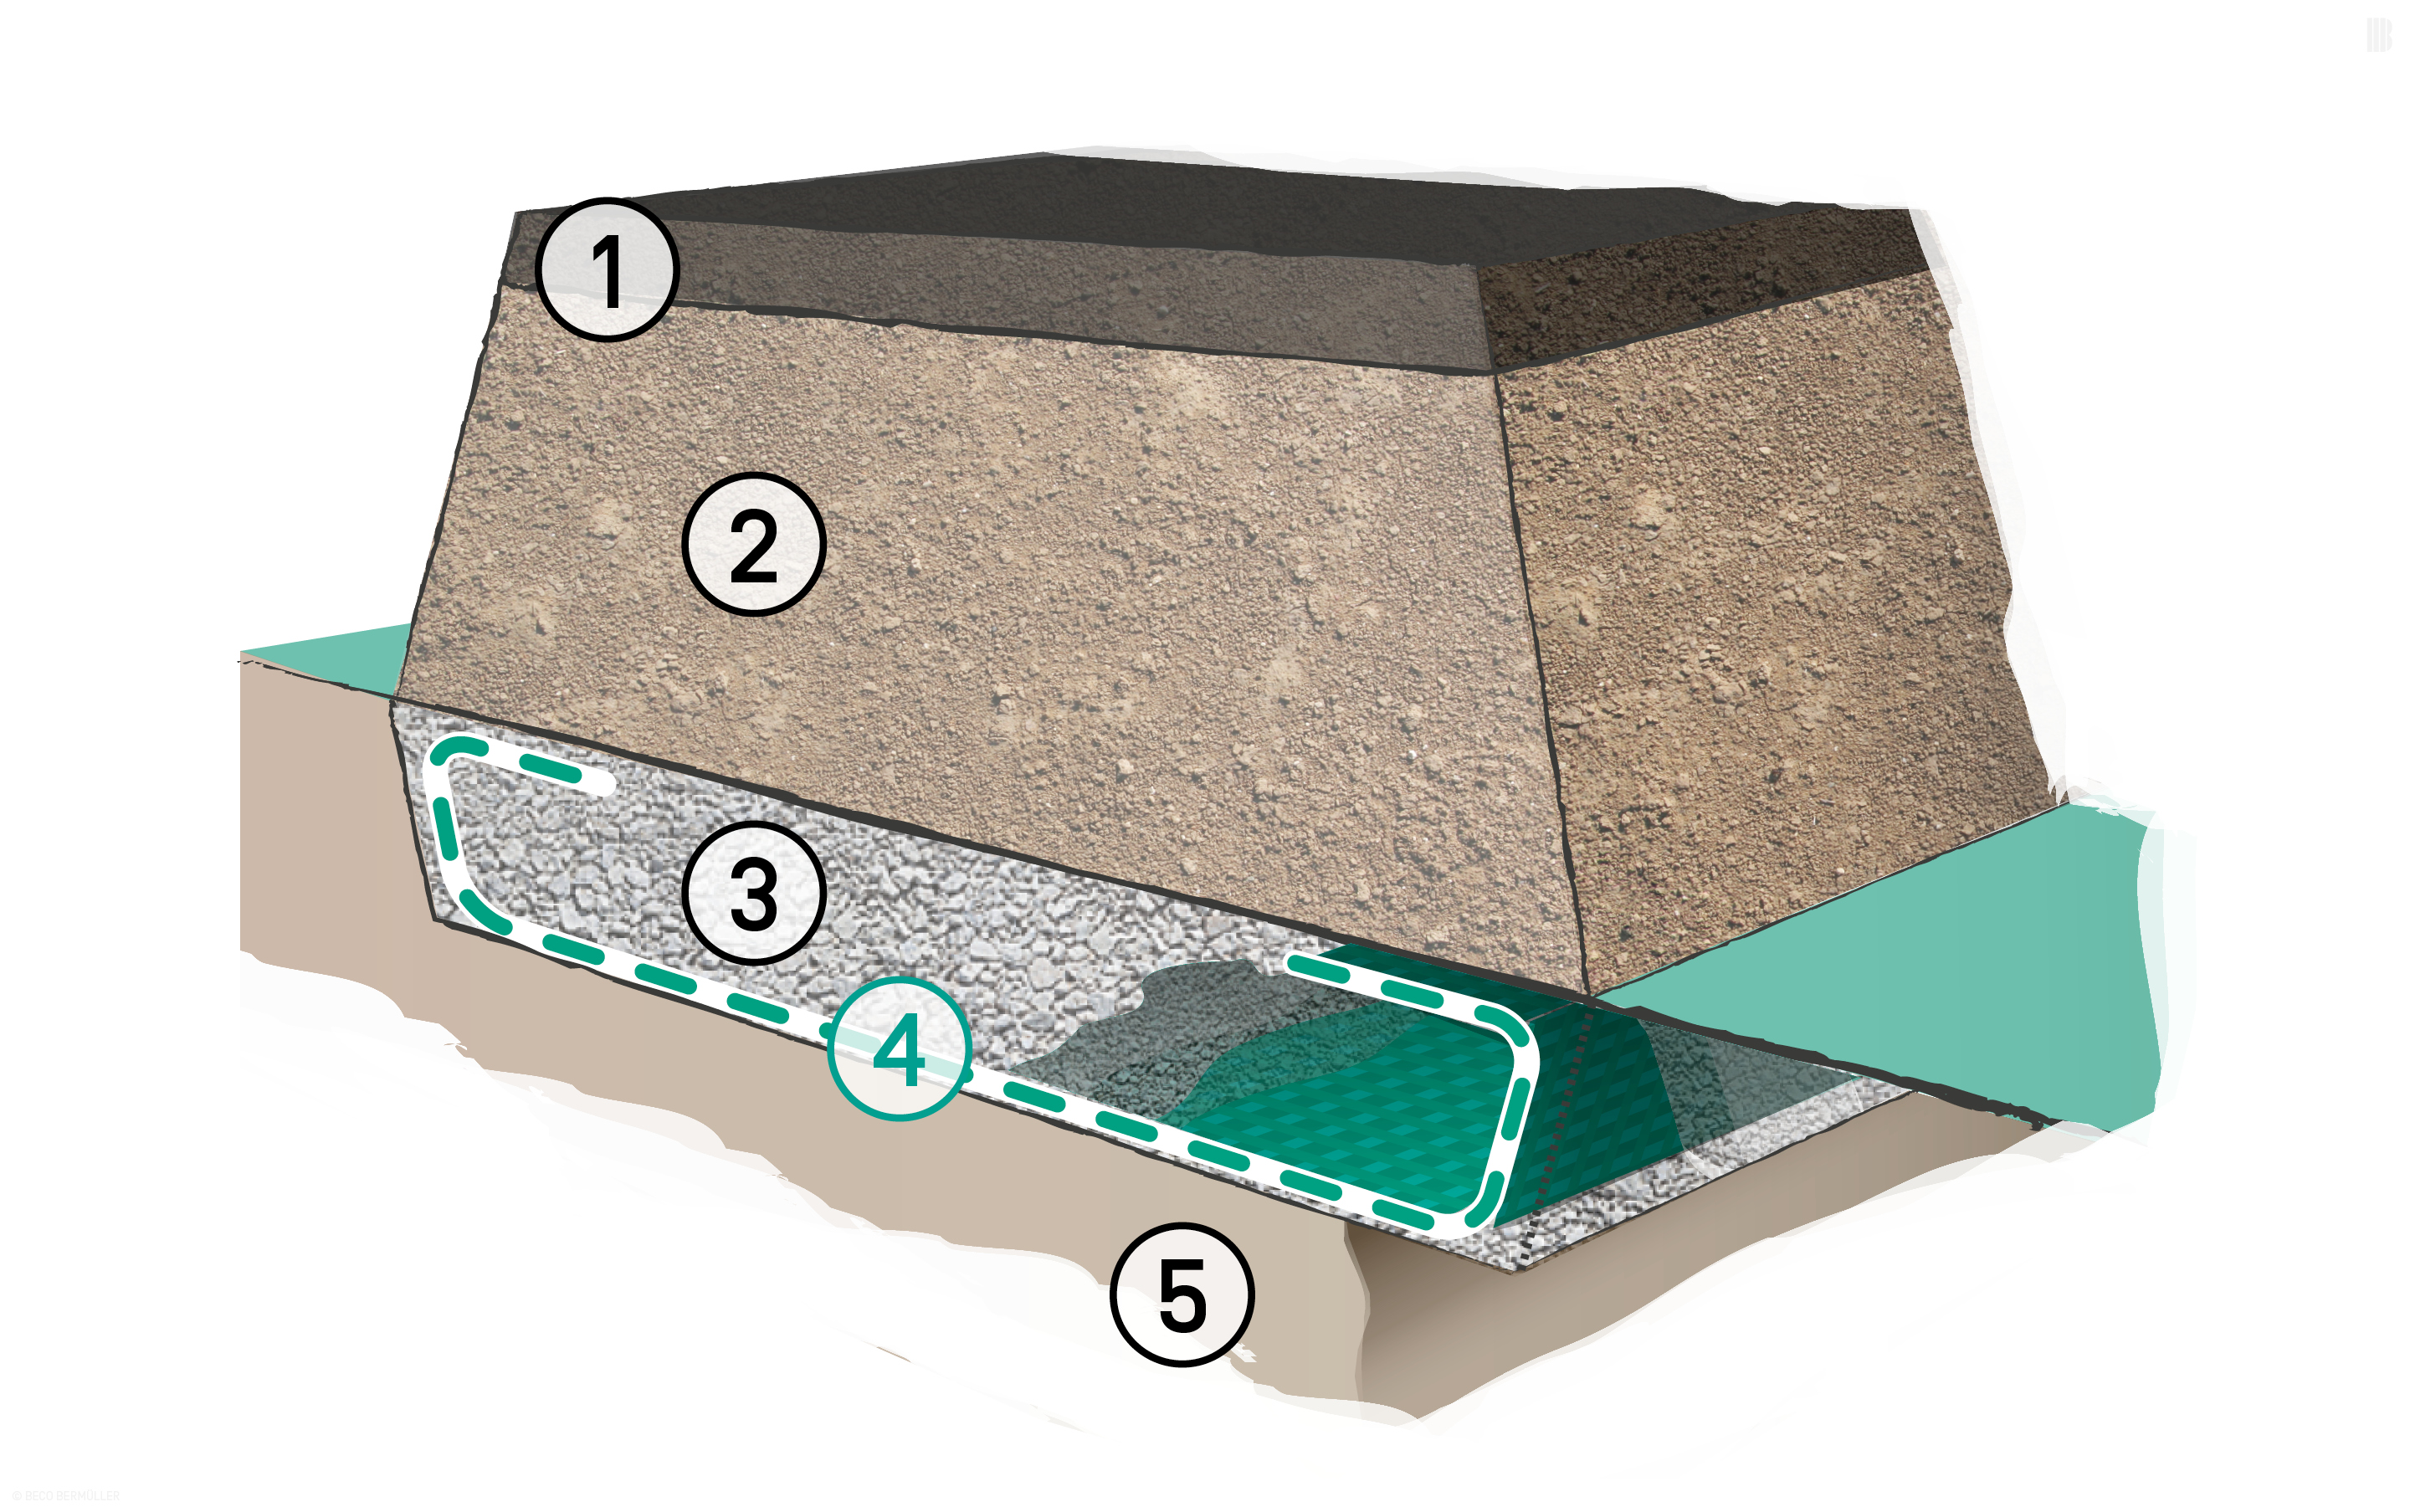 Reinforced layer as soil replacement: 1. Bound surface layer | 2. Unbound surface layer | 3. Partial soil replacement | 4. BEFORCE Woven Geotextiles | 5. Subsoil with poor load-bearing capacity